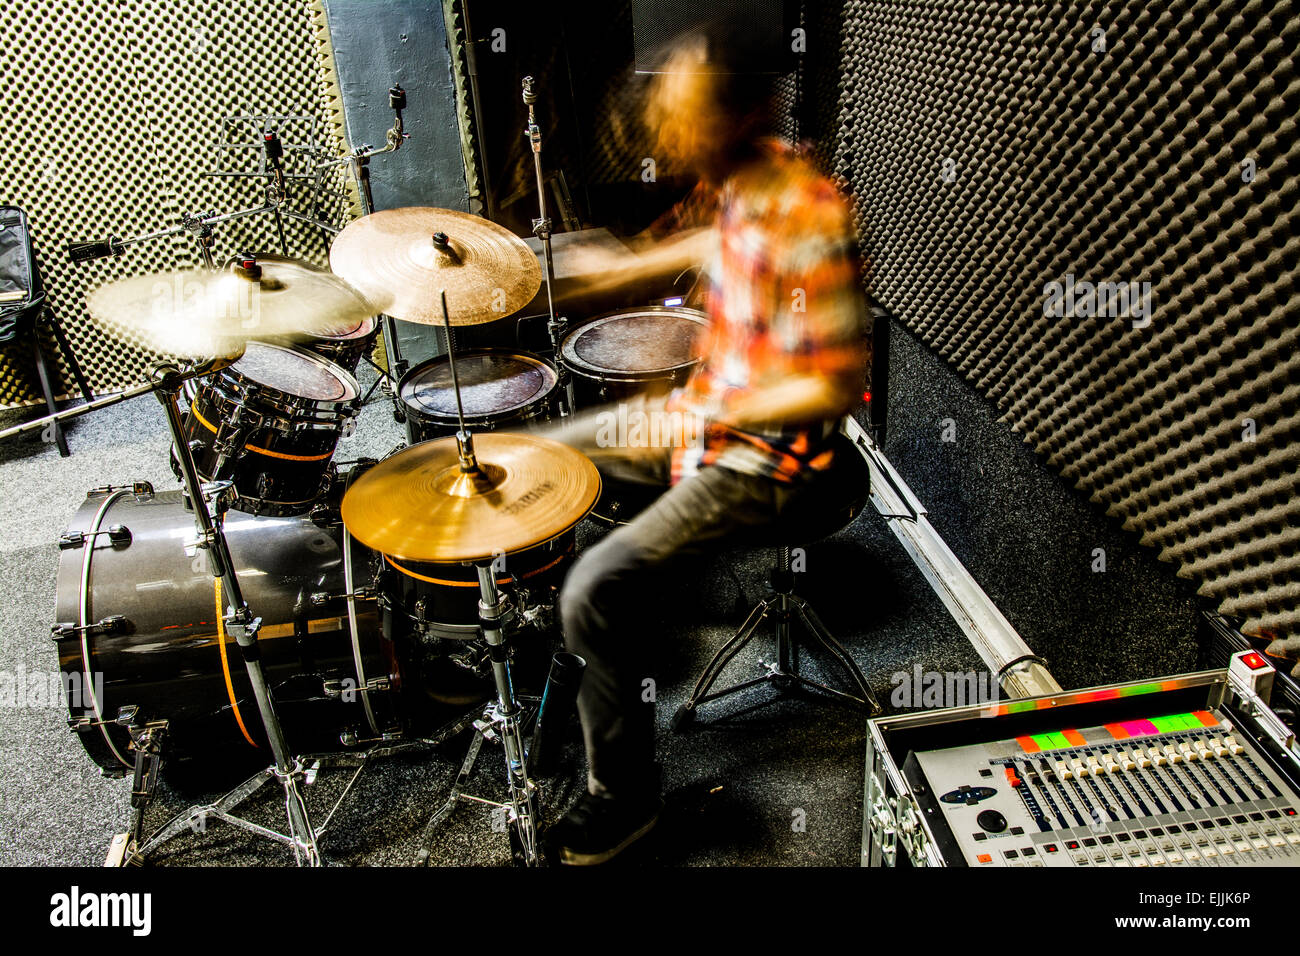 Drummer playing drums with power. - Stock Image